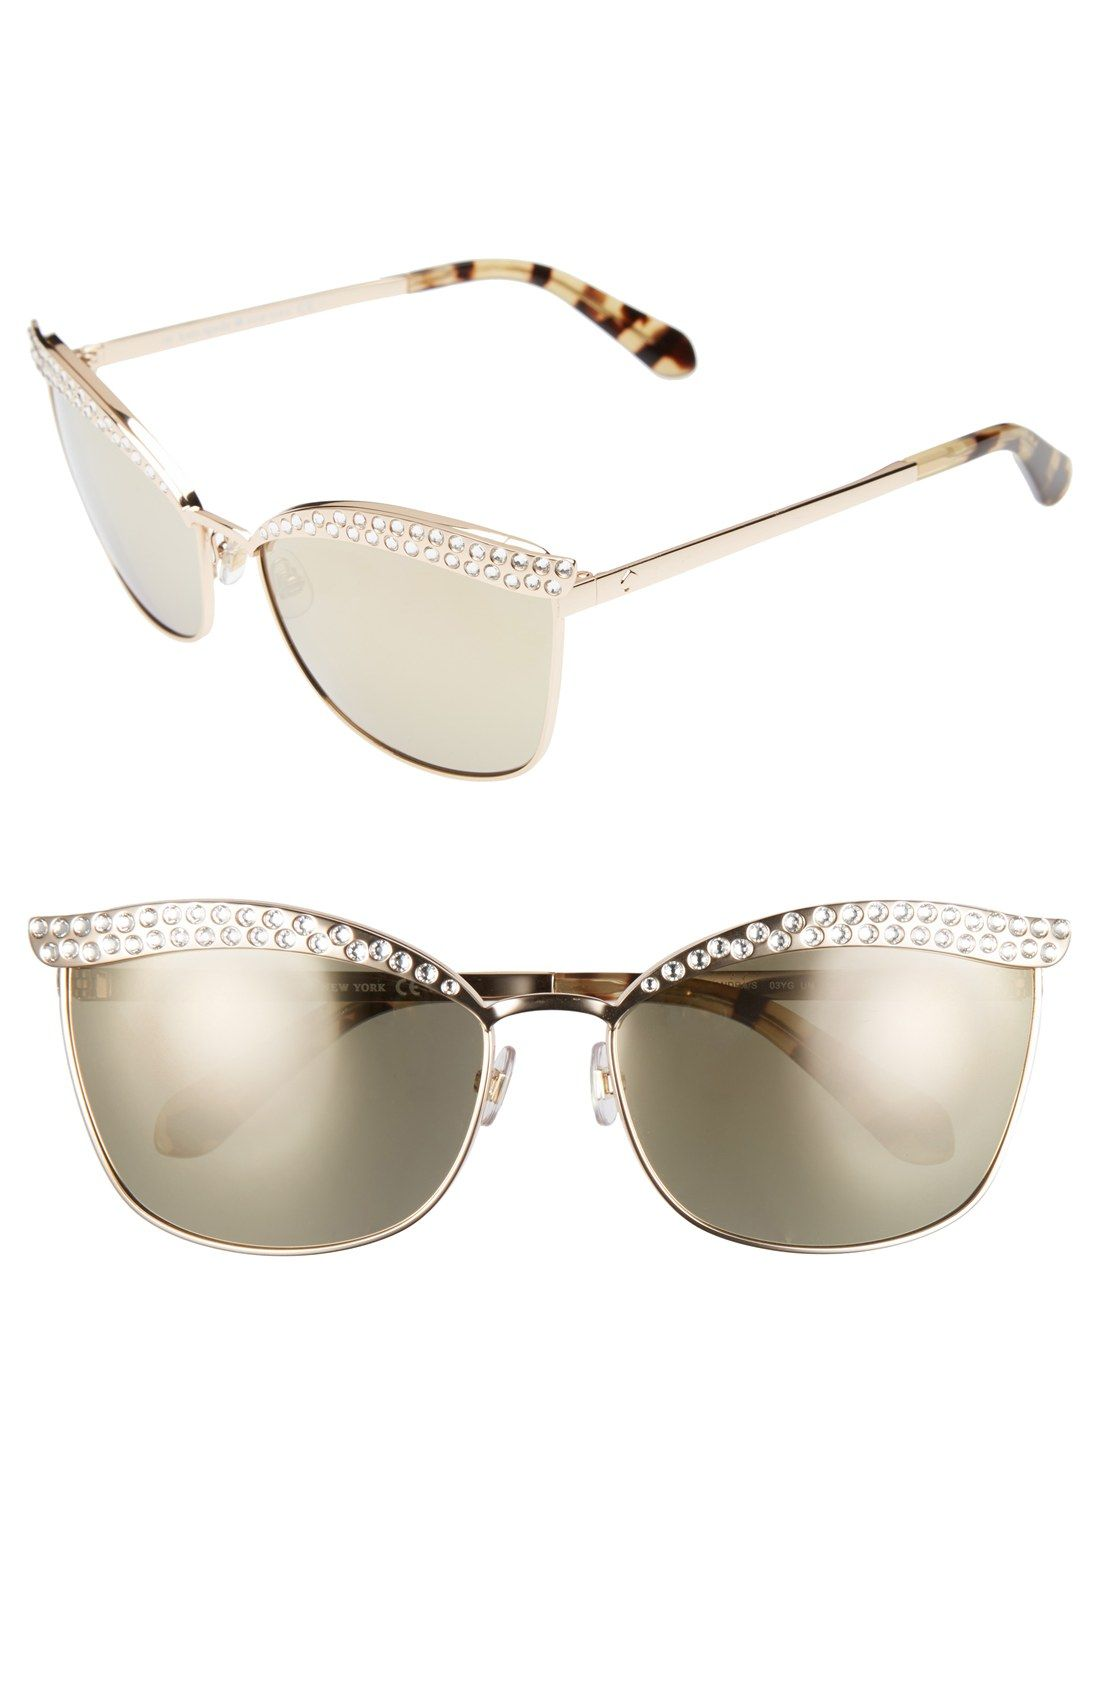 Love the twinkling crystals on this ultra classy aviator sunglasses ...